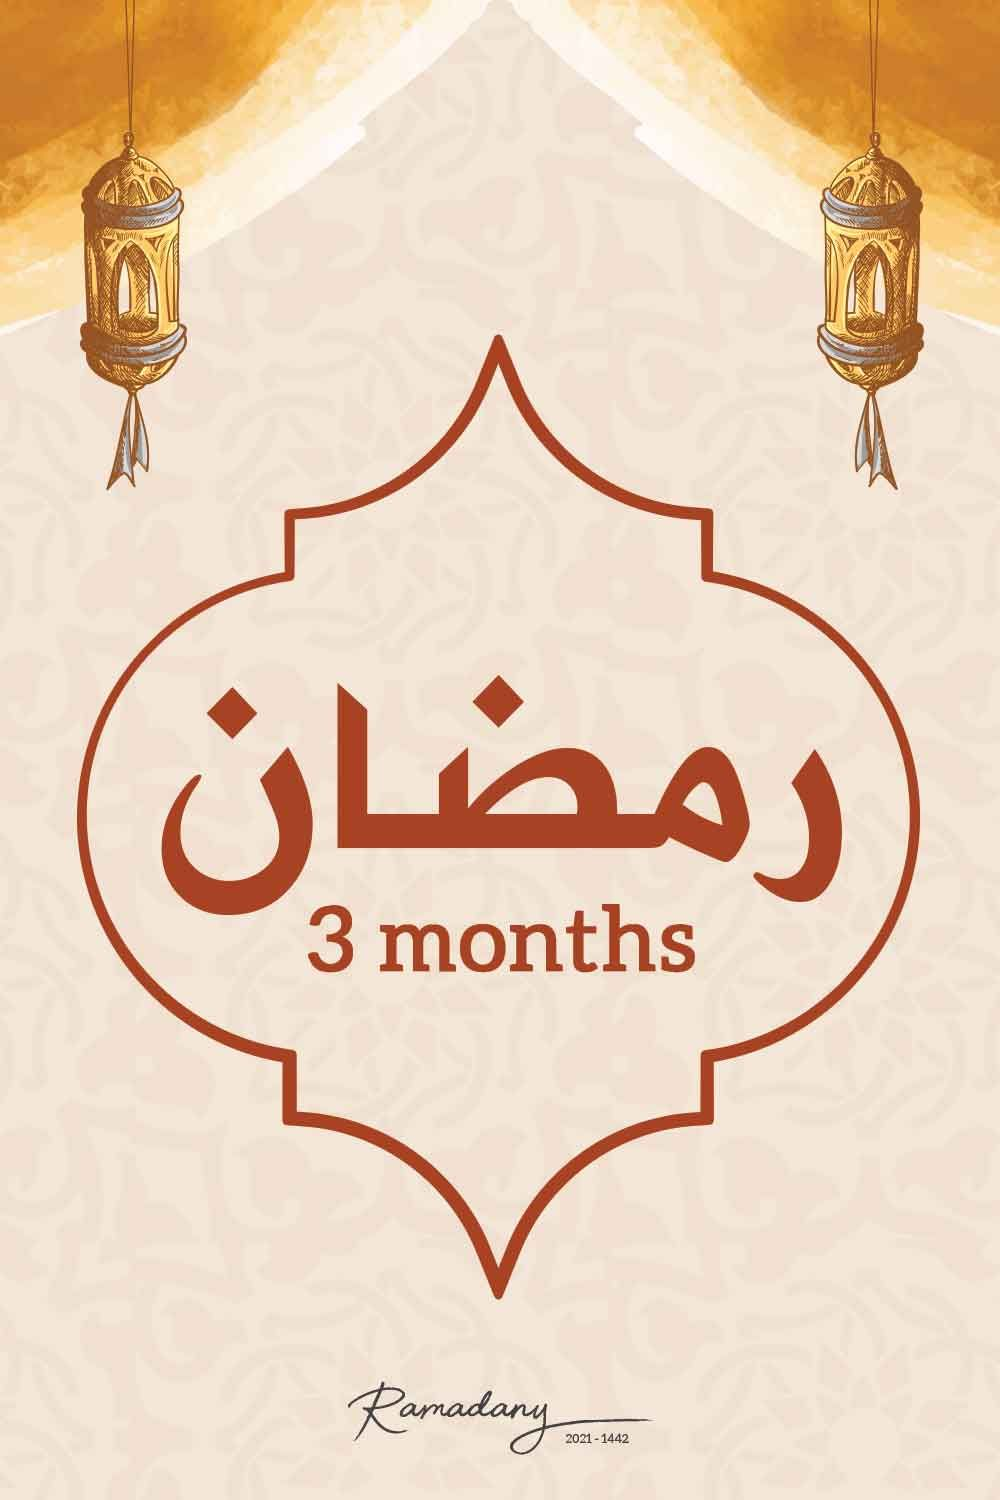 Ninety Days More To The Blessed Month Ramadan 3 Months To Go Ramadan 2021 Countdown In 2021 Ramadan Ramadan Tips Blessed